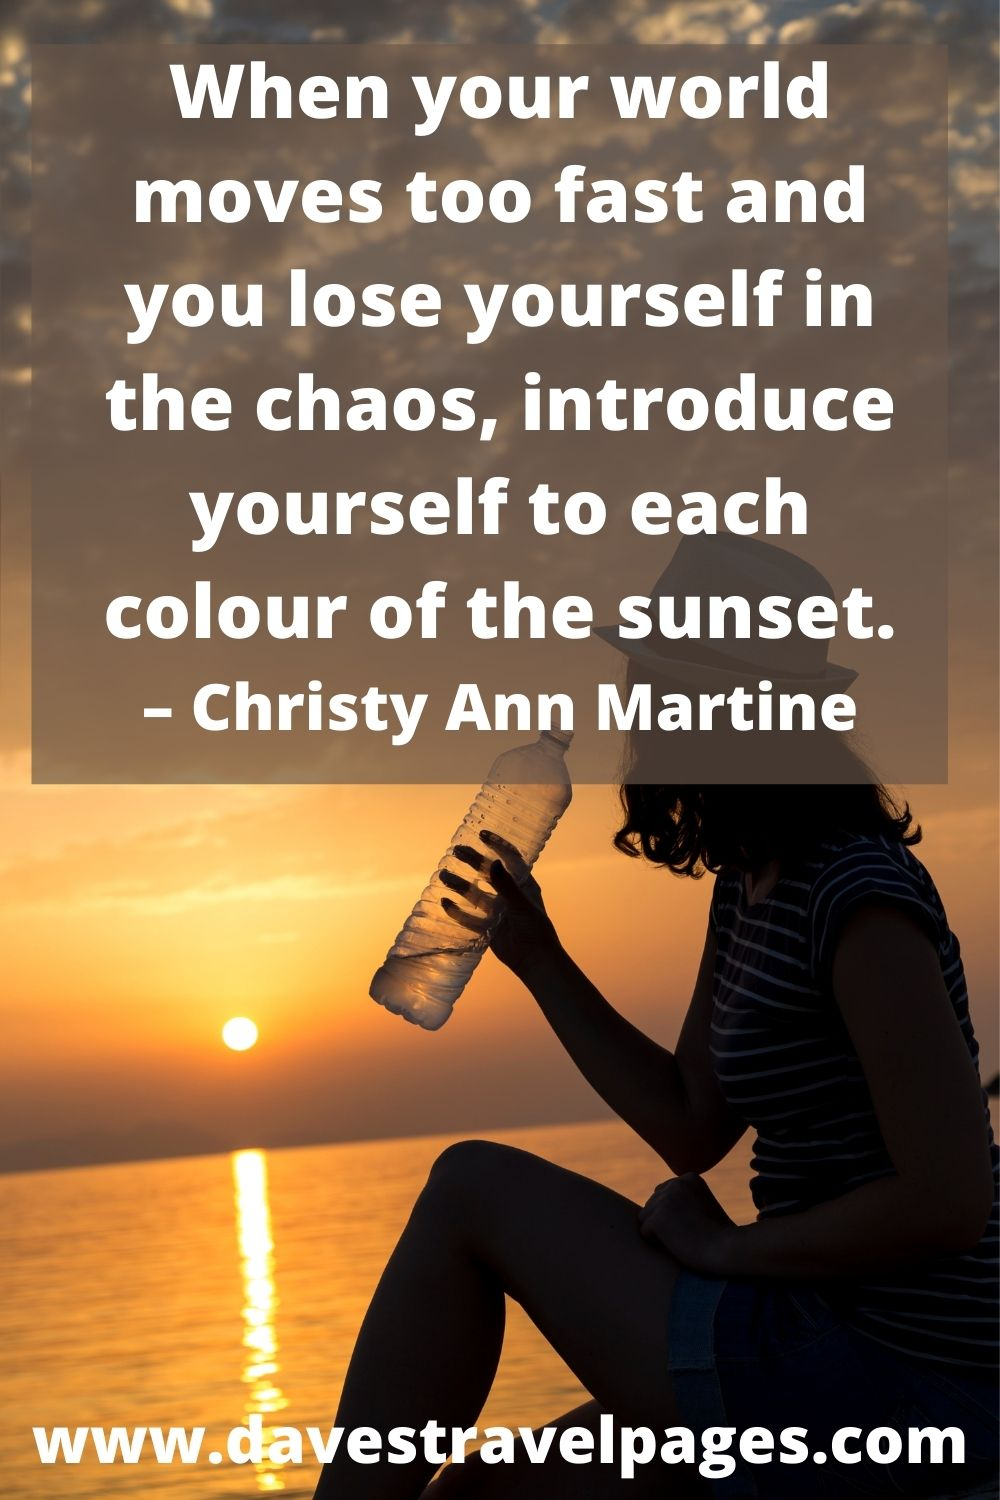 When your world moves too fast and you lose yourself in the chaos, introduce yourself to each colour of the sunset. – Christy Ann Martine